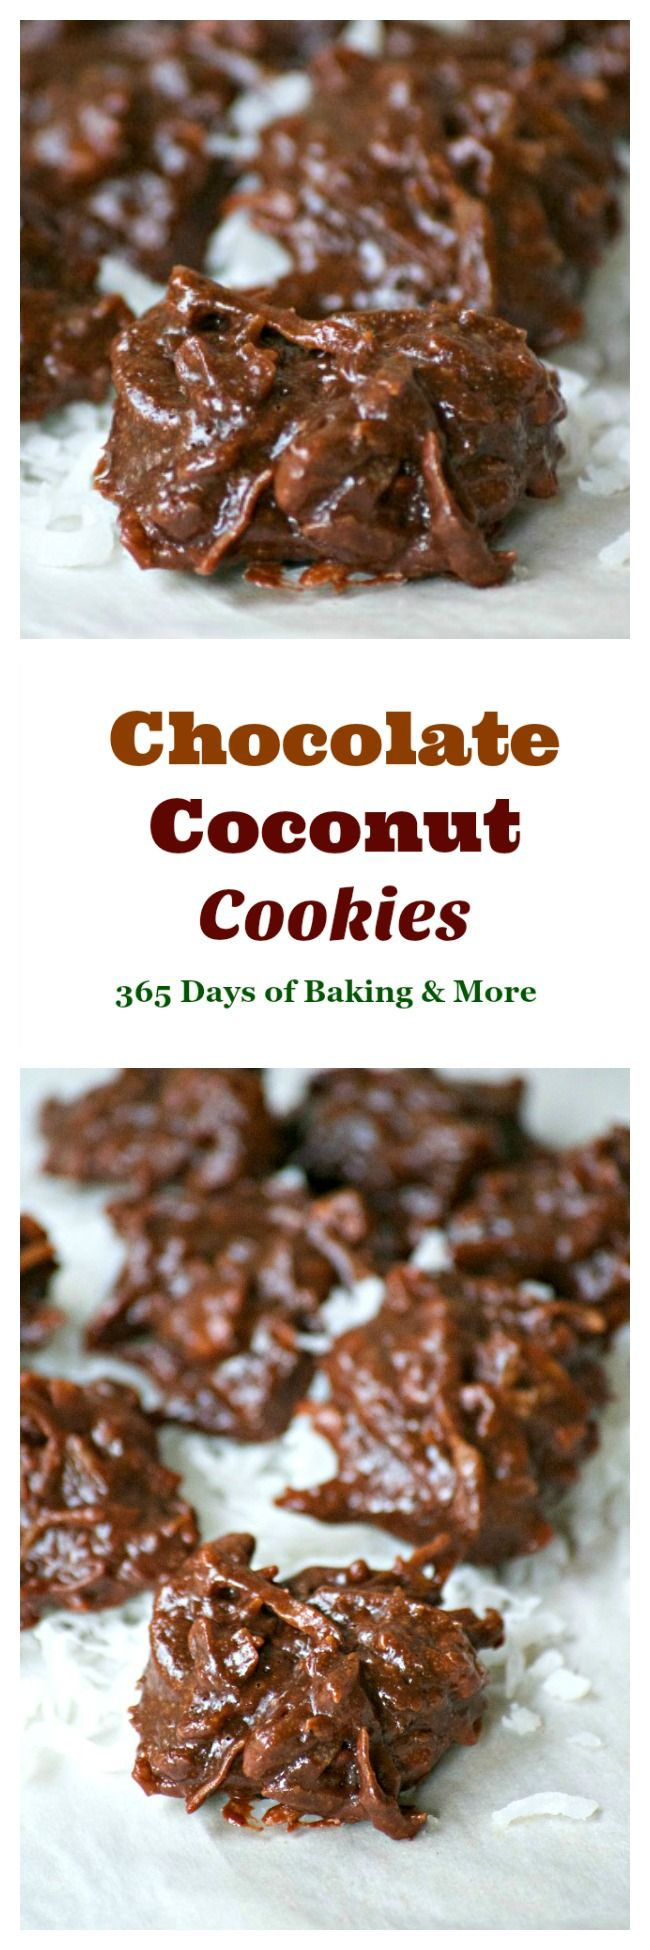 These Chocolate coconut cookies are flour-less cookies that are chewy, chocolatey, sweet and delicious. You can't stop at just one!